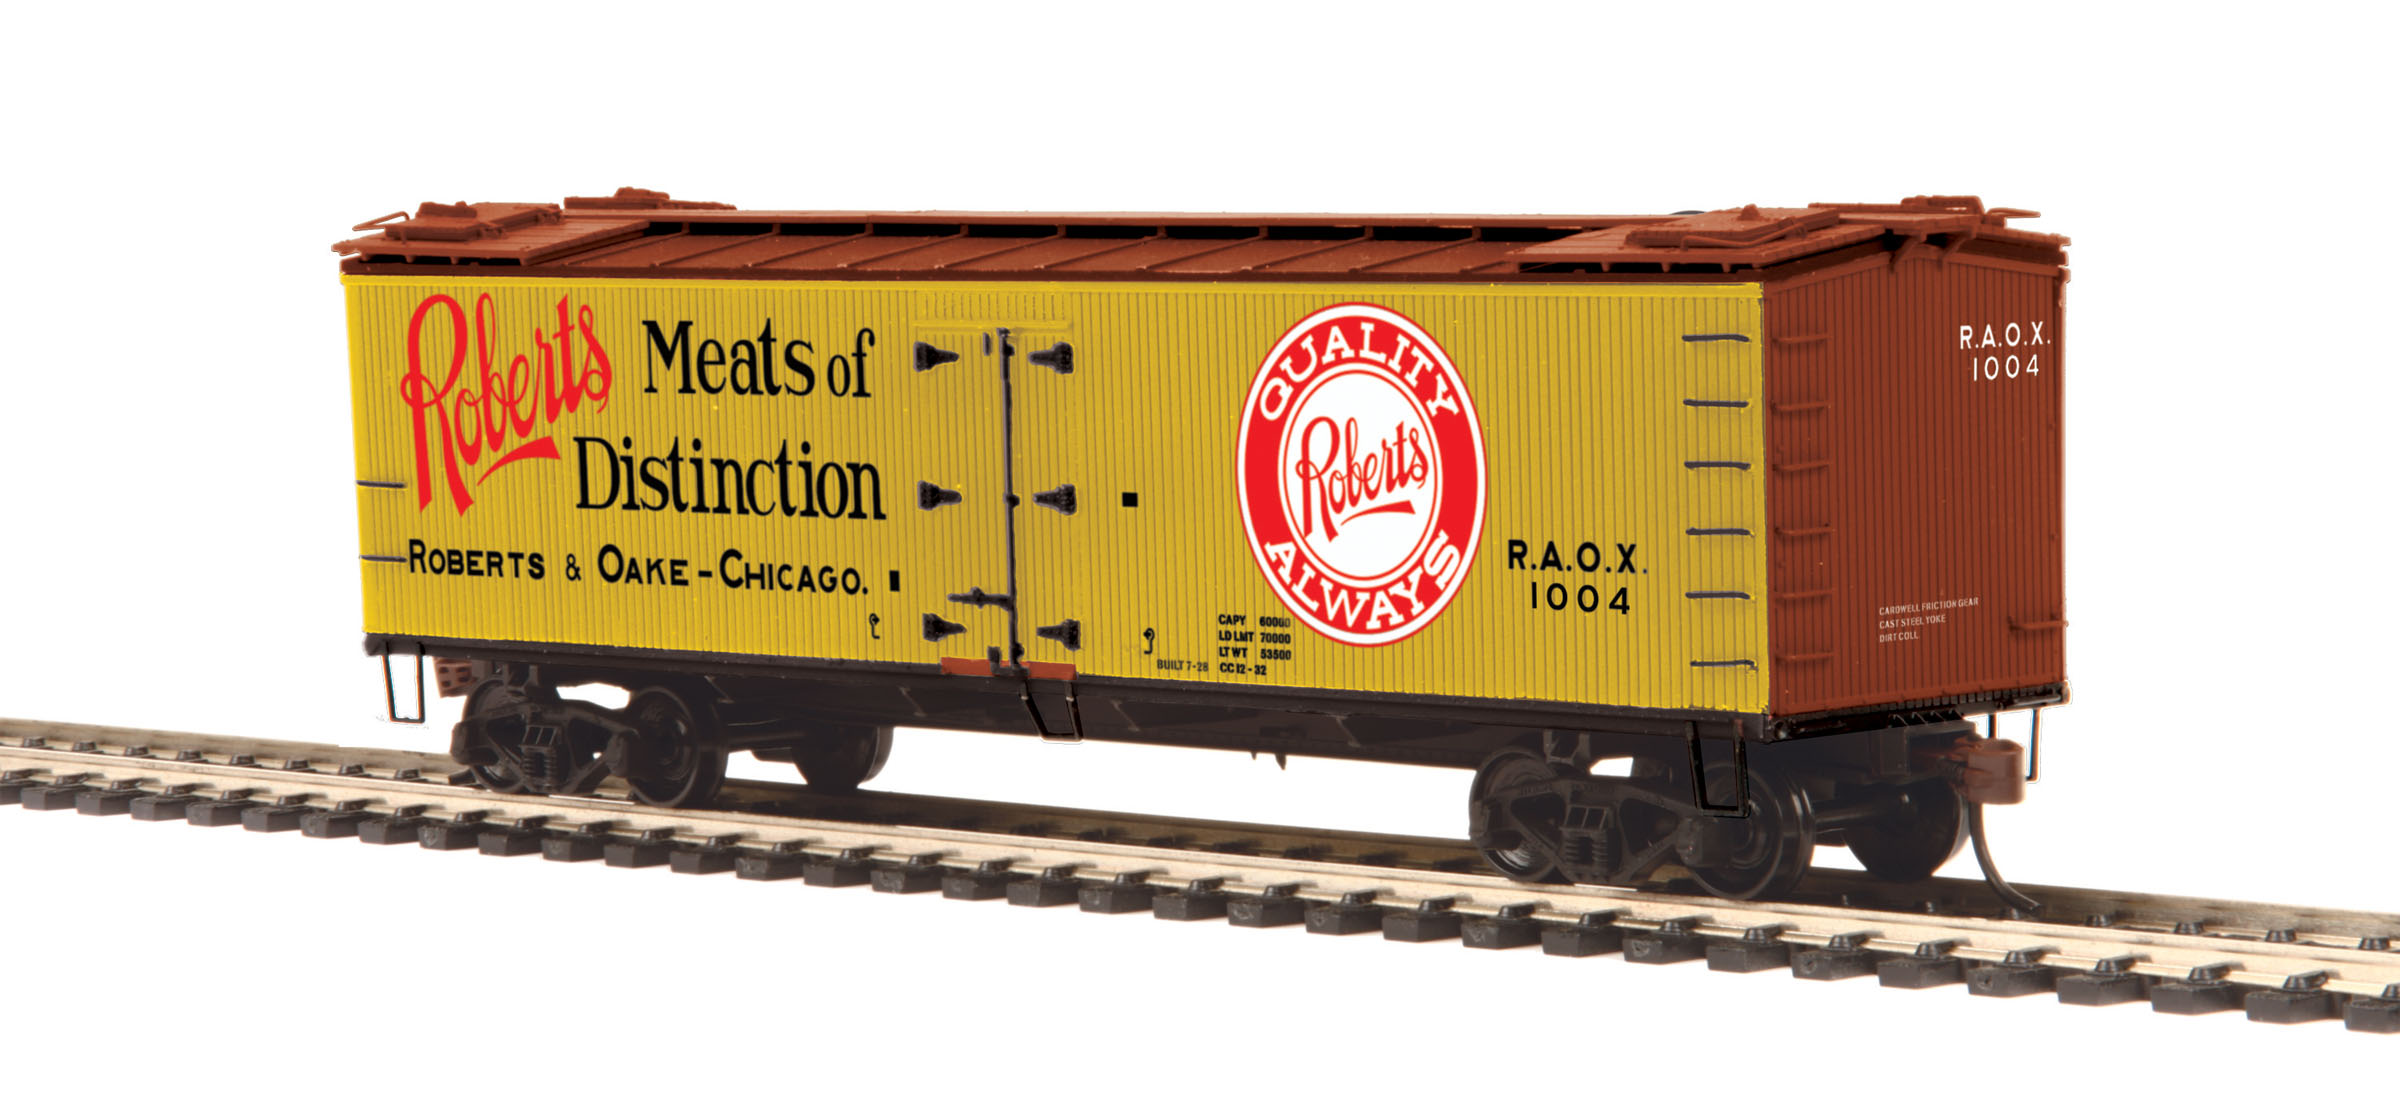 MTH 80-94052 HO Woodside Reefer Roberts & Oake Meats #1004 This is MTH 80-94052 HO Woodside Reefer Roberts & Oake Meats #1004. The coming of the railroad changed the way America ate and drank. Before the iron horse connected every town of any importance to the outside world, most food was grown or produced locally. The arrival of cheap, fast, refrigerated transport - in the form of the woodsided reefer with ice bunkers at each end - enabled local brewers, dairies, meat processors, and other food businesses to become players on a national scale.Until 1934, shippers could advertise their wares on leased bill - board reefers, each a hand-painted traveling work of art. That year, the Interstate Commerce Commission outlawed the flamboyant paint schemes because the cars often hauled shipments from other companies - whose freight bills thus unfairly paid to advertise the lessee's products.M.T.H. Electric Trains' HO premium rolling stock like this R40-2 reefer car are true 1/87 scale models of North American freight cars. Abundantly detailed with separate grab irons, steps, hatches and brake wheels ensure that these models will hold up to even the most discrminating eye. Outfitted with smooth rolling trucks and Kadee couplers make them a favorite of operators who enjoy long consists of colorful liveries, each available in multiple car numbers.Its key features are:Intricately detailed durable ABS bodyMetal wheels and axlesDecorative brake wheelsSeparate metal handrails1:87 scale dimensionsKadee® couplersDetailed undercarriageDetailed 4-wheel trucksUnit measures: 6 x 1 5/16 x 1 7/8Operates on 18 radius curvesCondition: Factory New (C-9All original; unused; factory rubs and evidence of handling, shipping and factory test run.Standards for all toy train related accessory items apply to the visual appearance of the item and do not consider the operating functionality of the equipment.Condition and Grading Standards are subjective, at best, and are intended to act as a guide. )Op